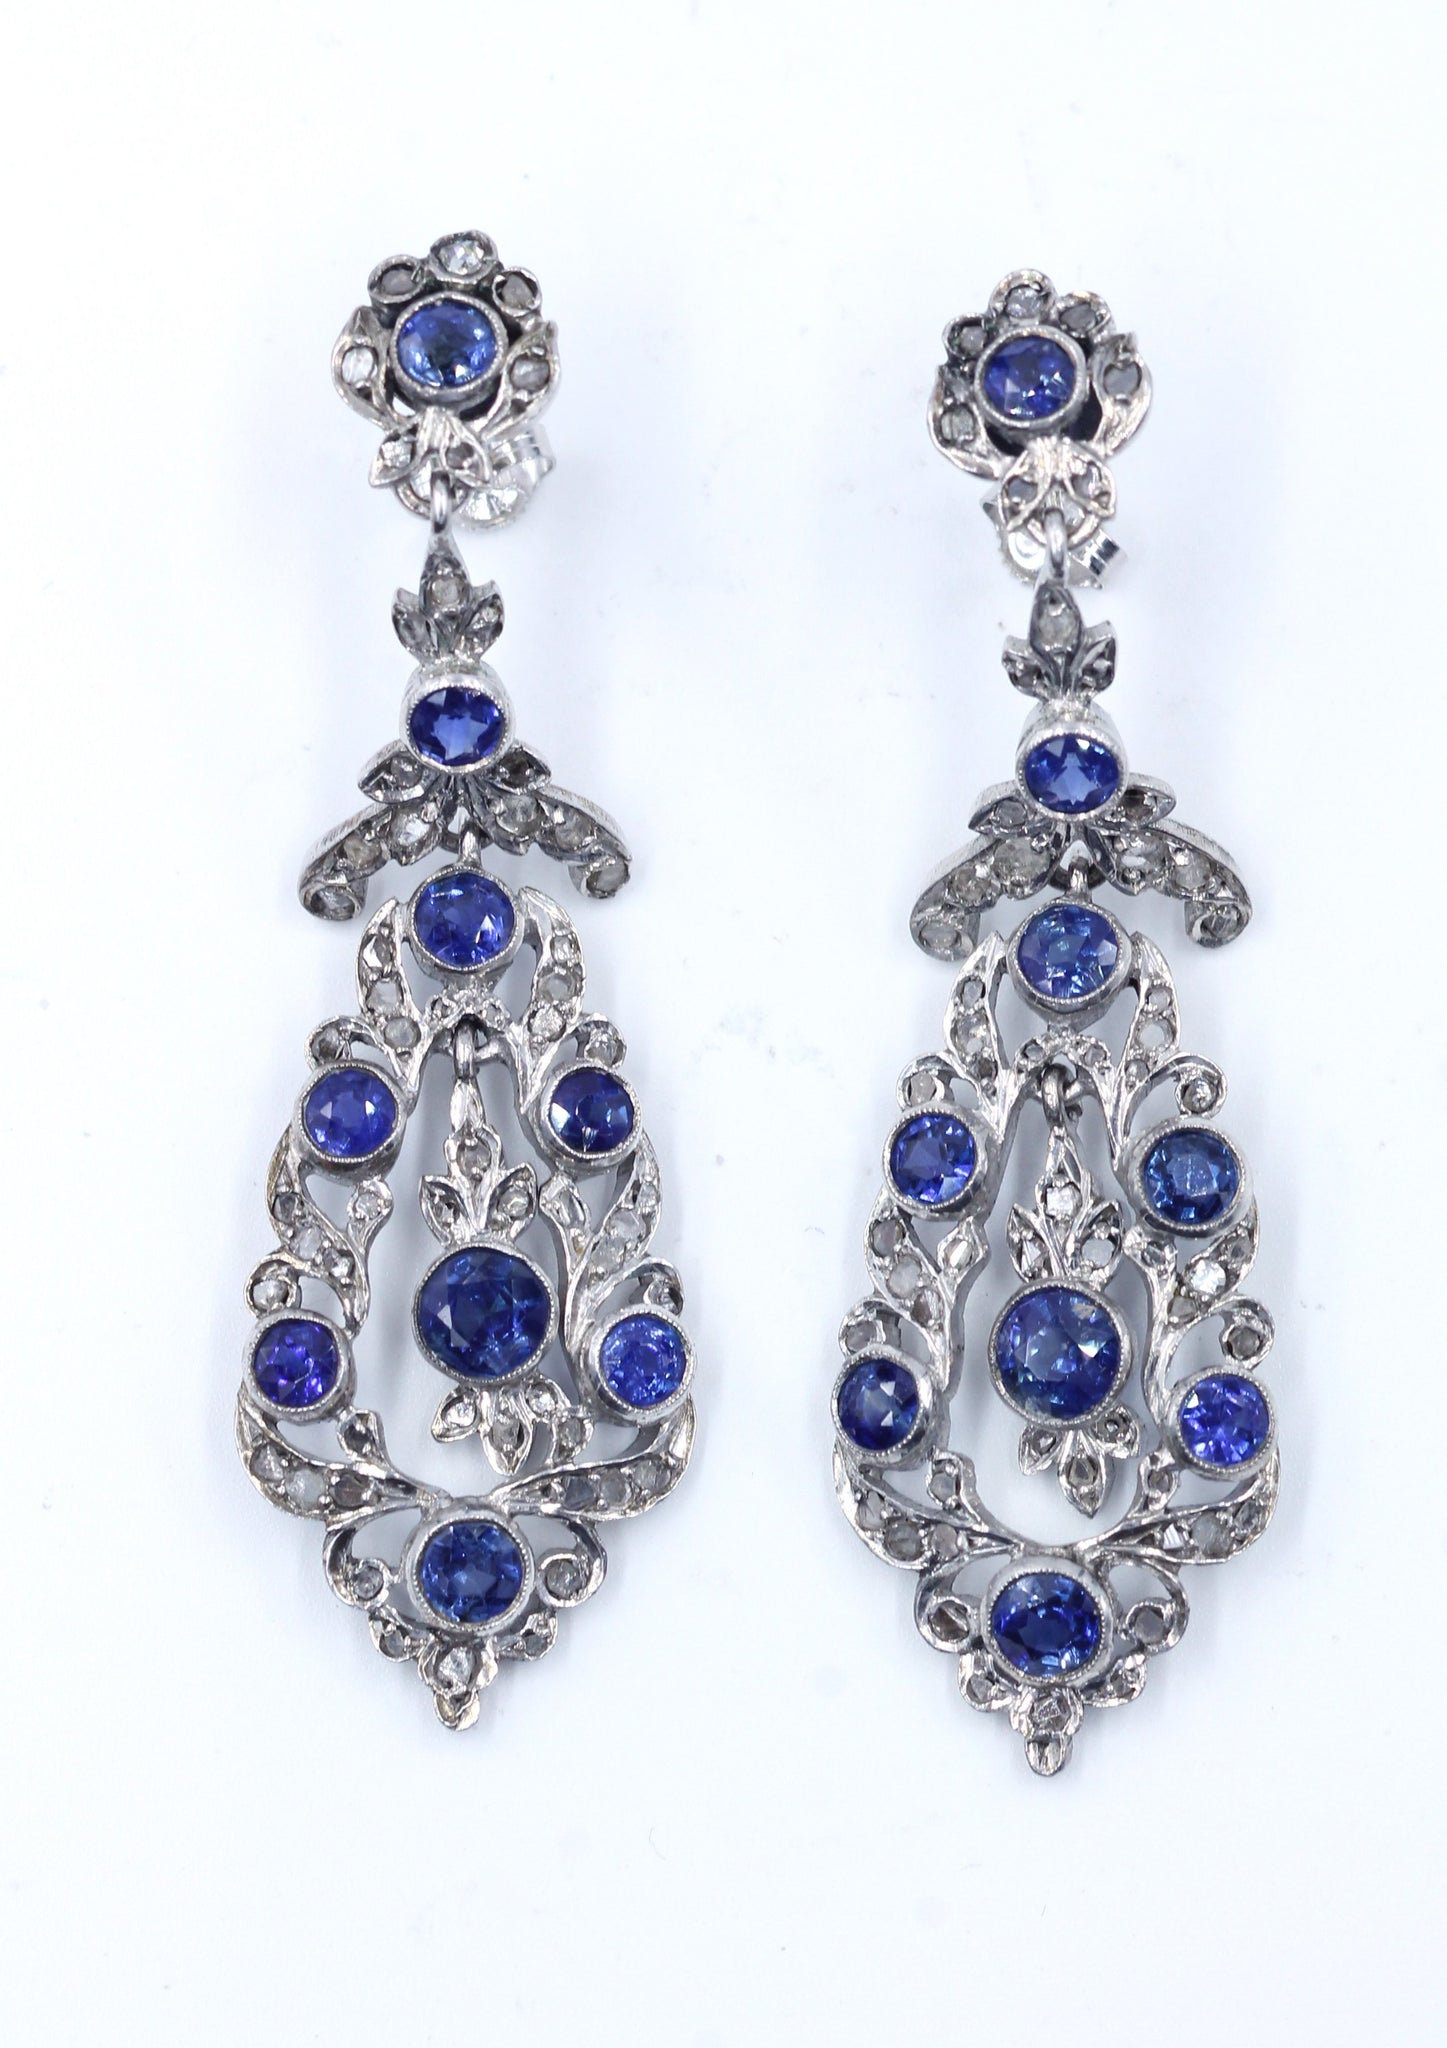 Vintage Diamond and Sapphire Earrings, SOLD